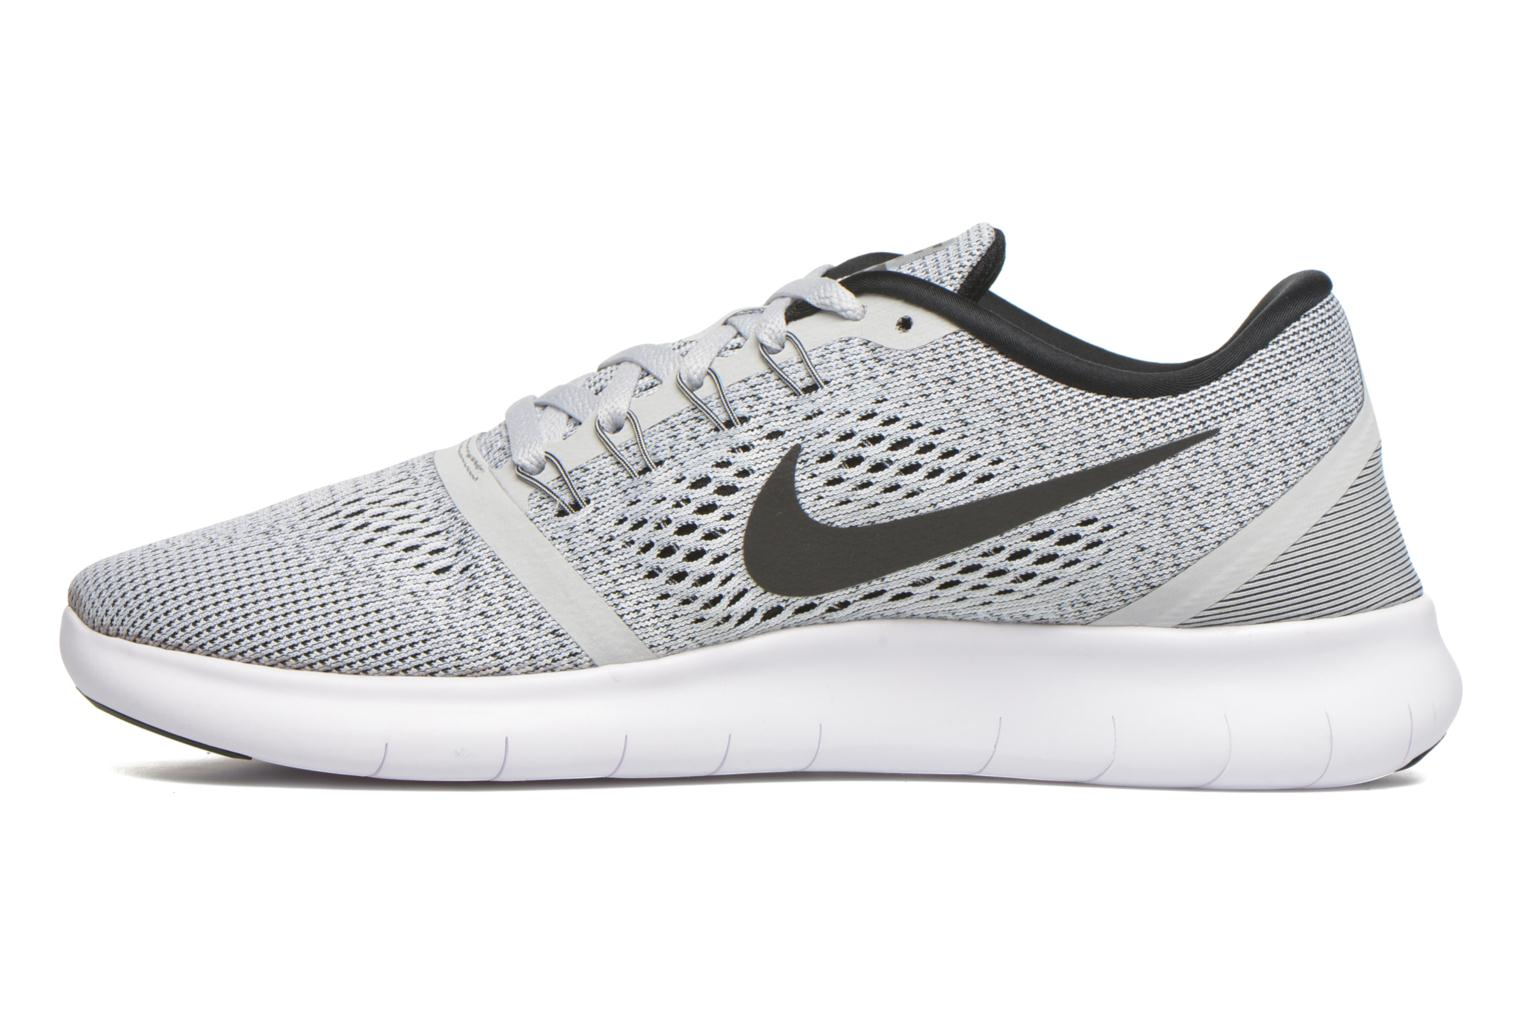 Chaussures de sport Nike Nike Free Rn Gris vue face